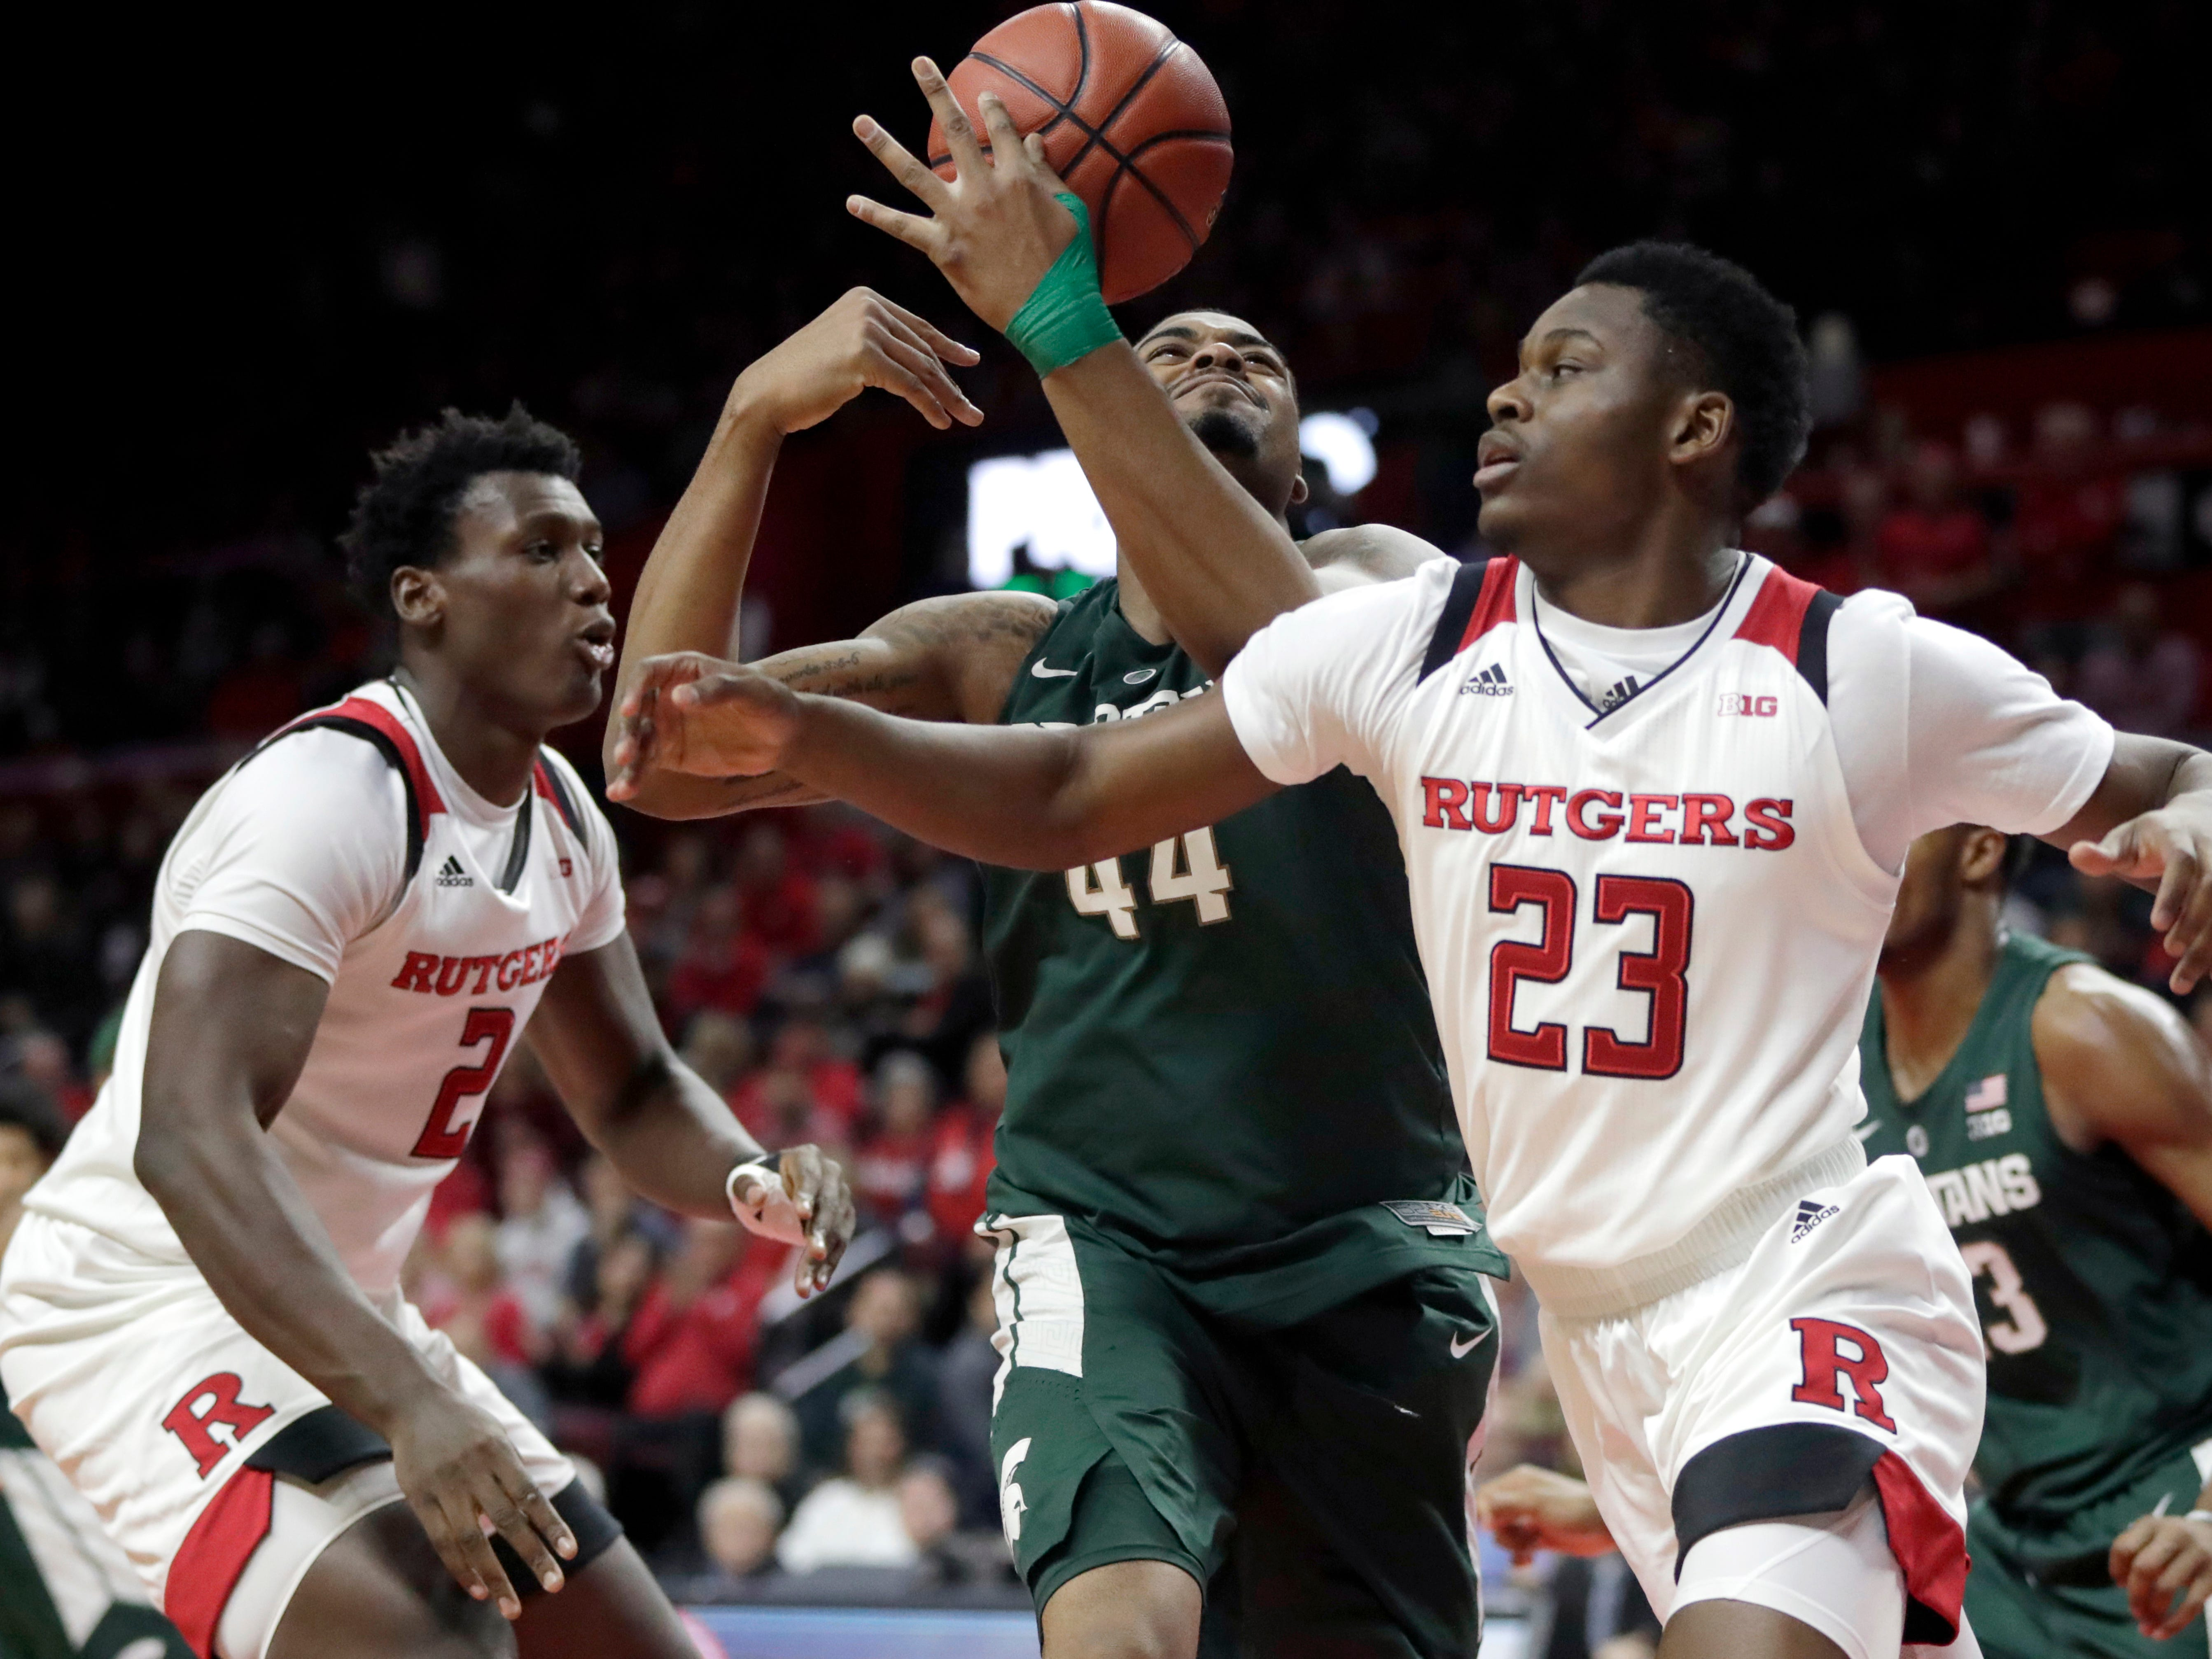 Michigan State forward Nick Ward (44) collects a rebound while Rutgers guard Montez Mathis (23) and center Shaquille Doorson (2) attack during the first half of an NCAA college basketball game, Friday, Nov. 30, 2018, in Piscataway, N.J. (AP Photo/Julio Cortez)